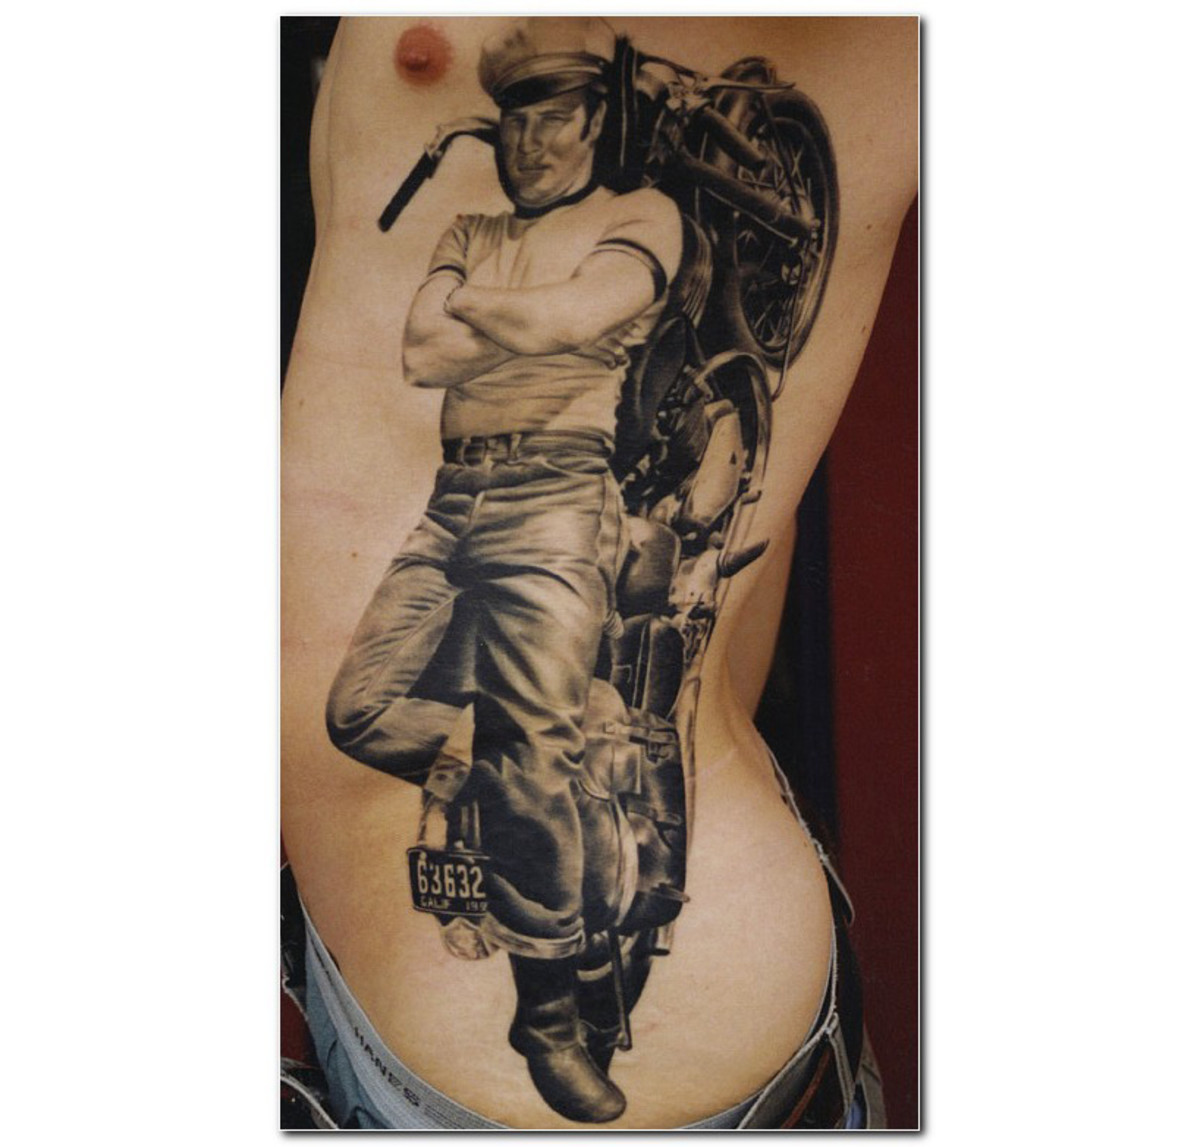 Man lying on motorcycle tattoo